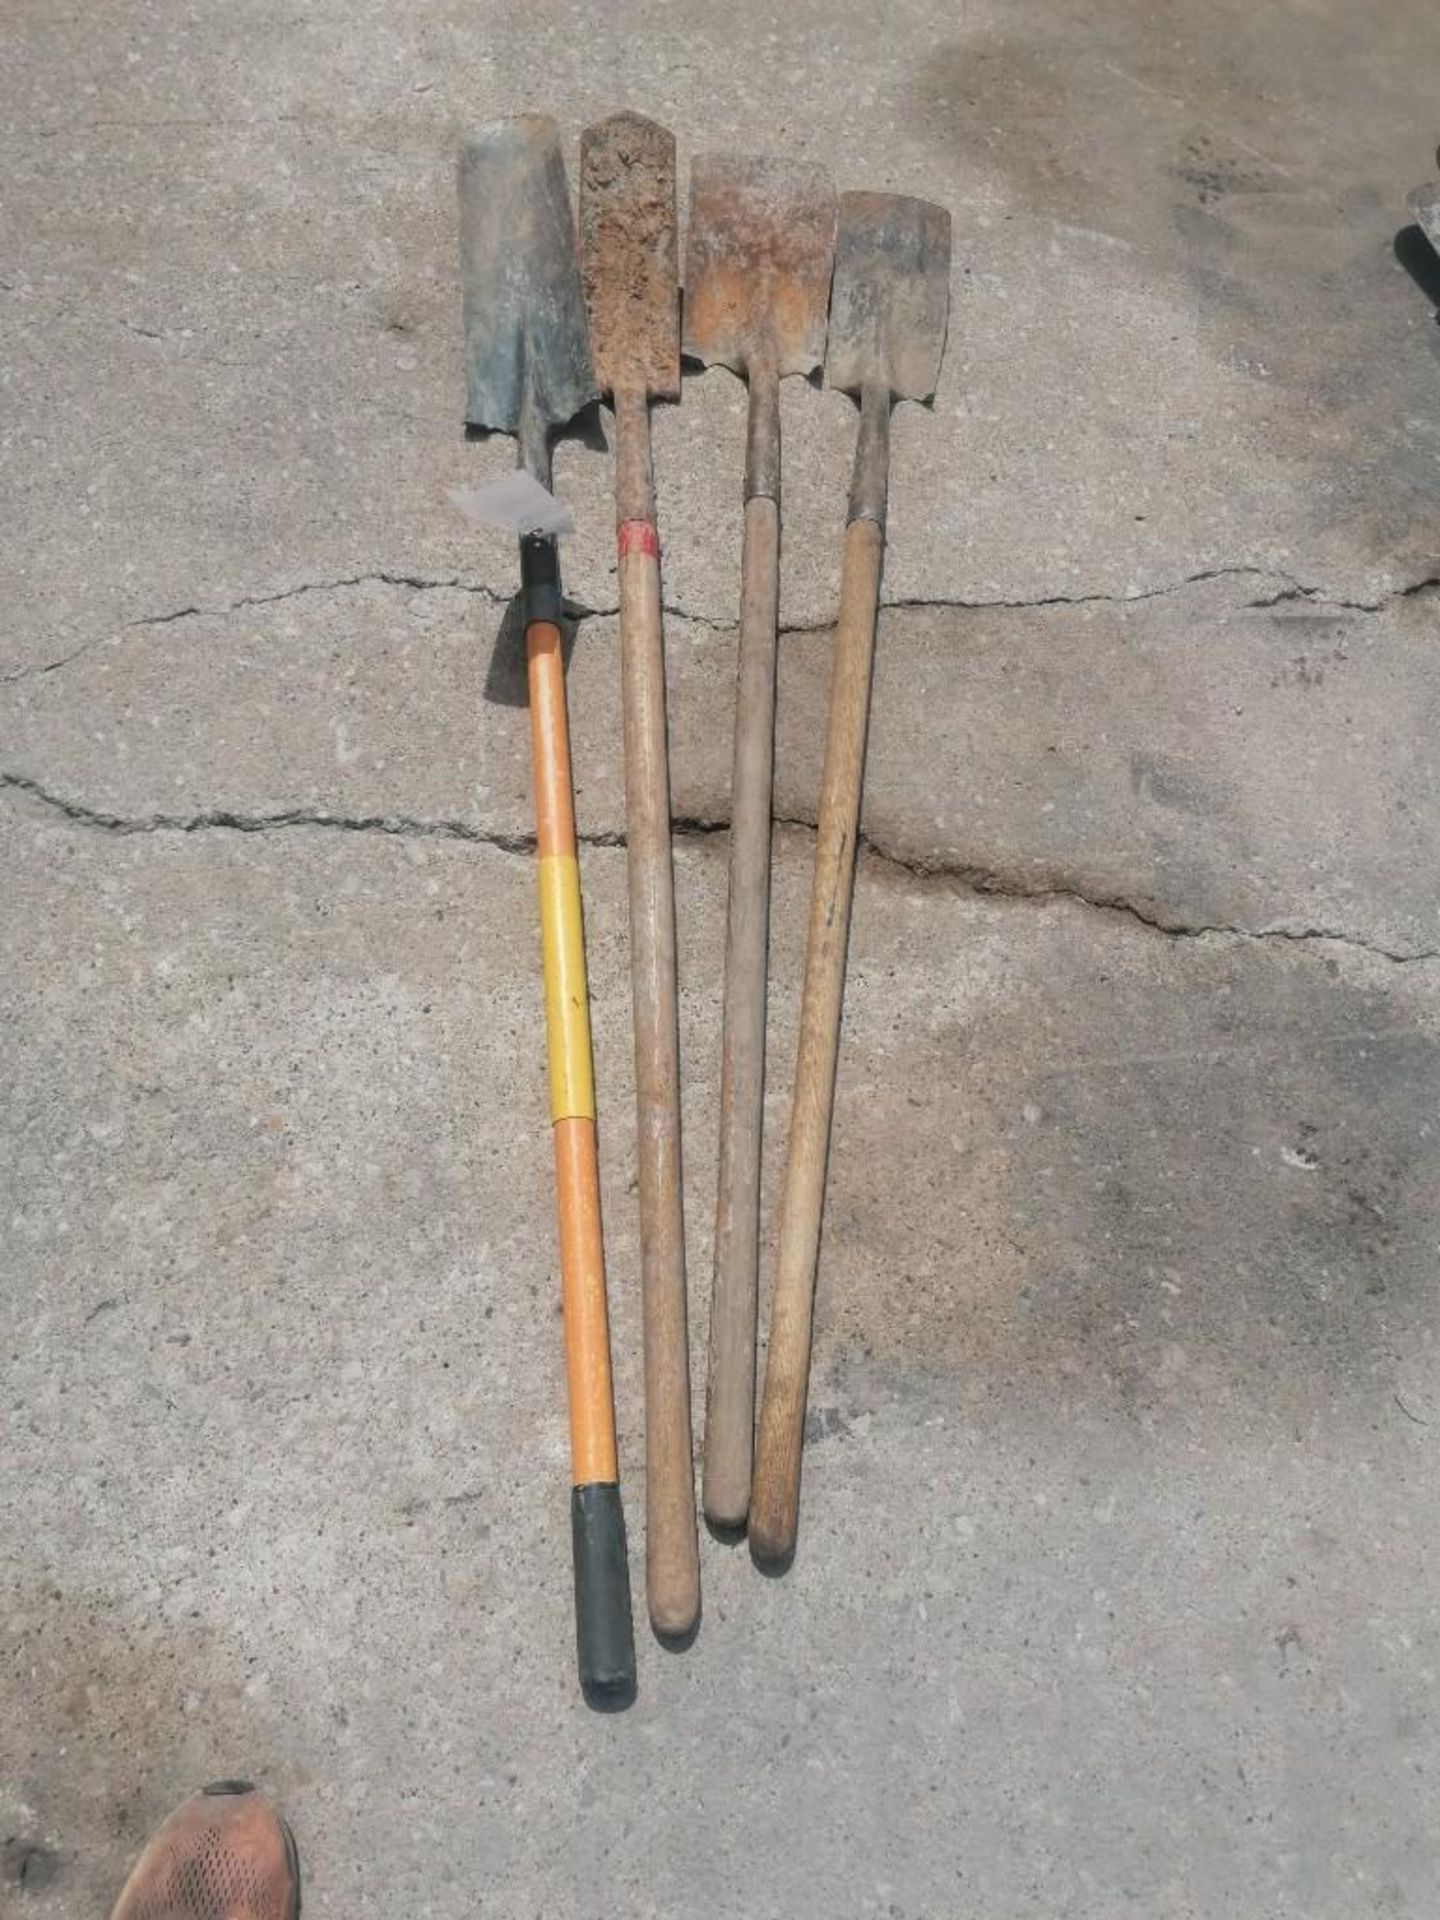 Lot 55 - (4) Shovels. Located at 301 E Henry Street, Mt. Pleasant, IA 52641.